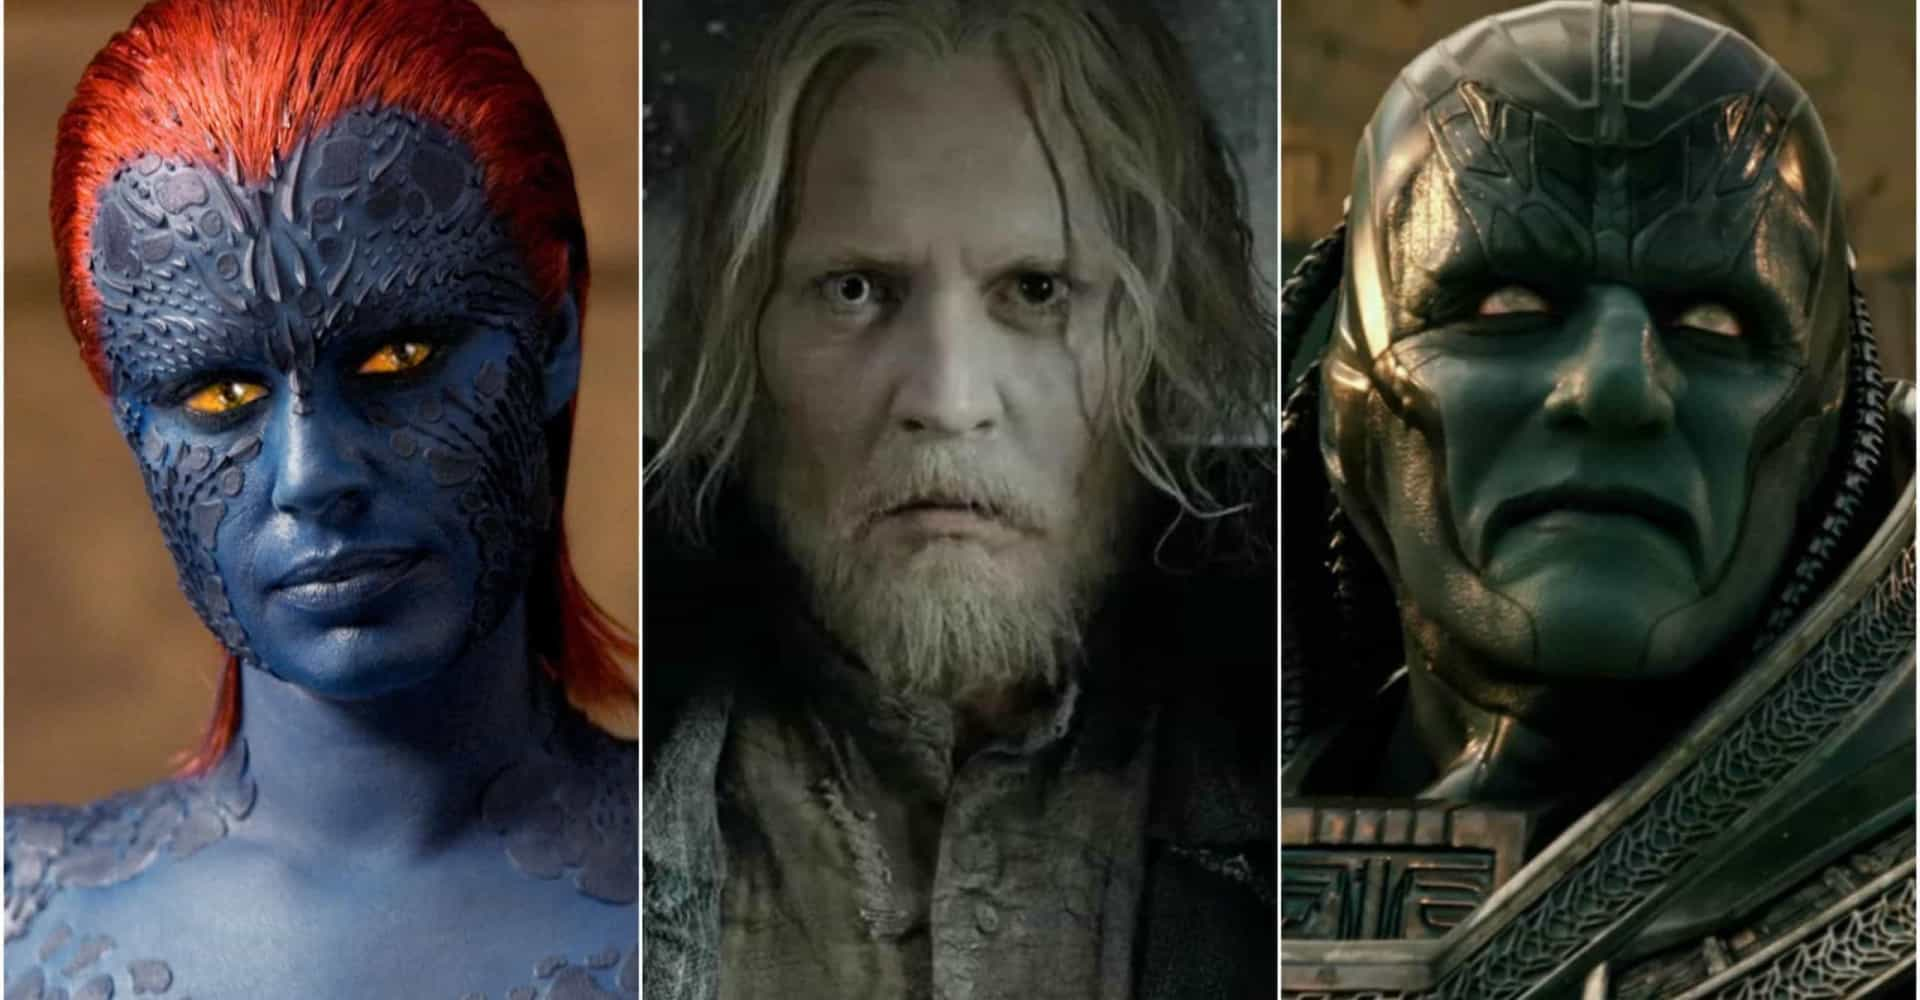 The most dramatic actor transformations for a movie role